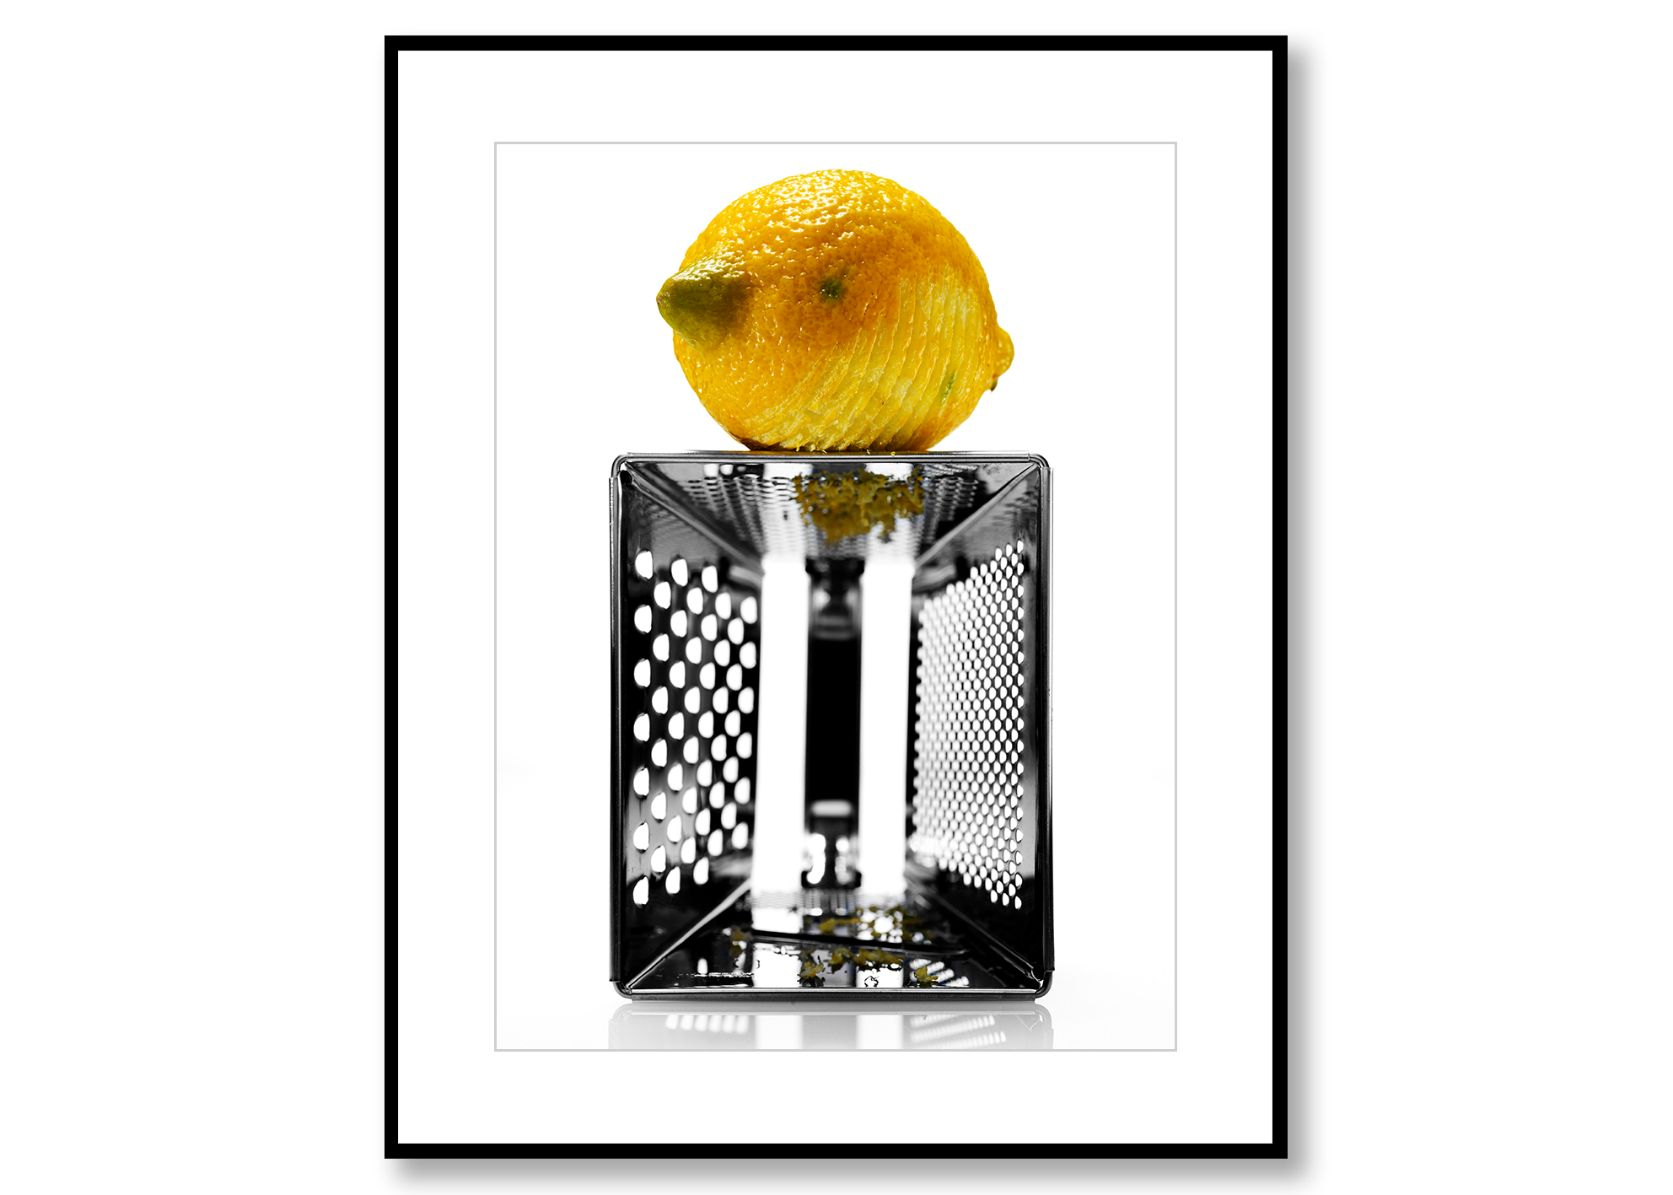 Lemon. Food art. Prints for sale. Photo by Fredrik Rege